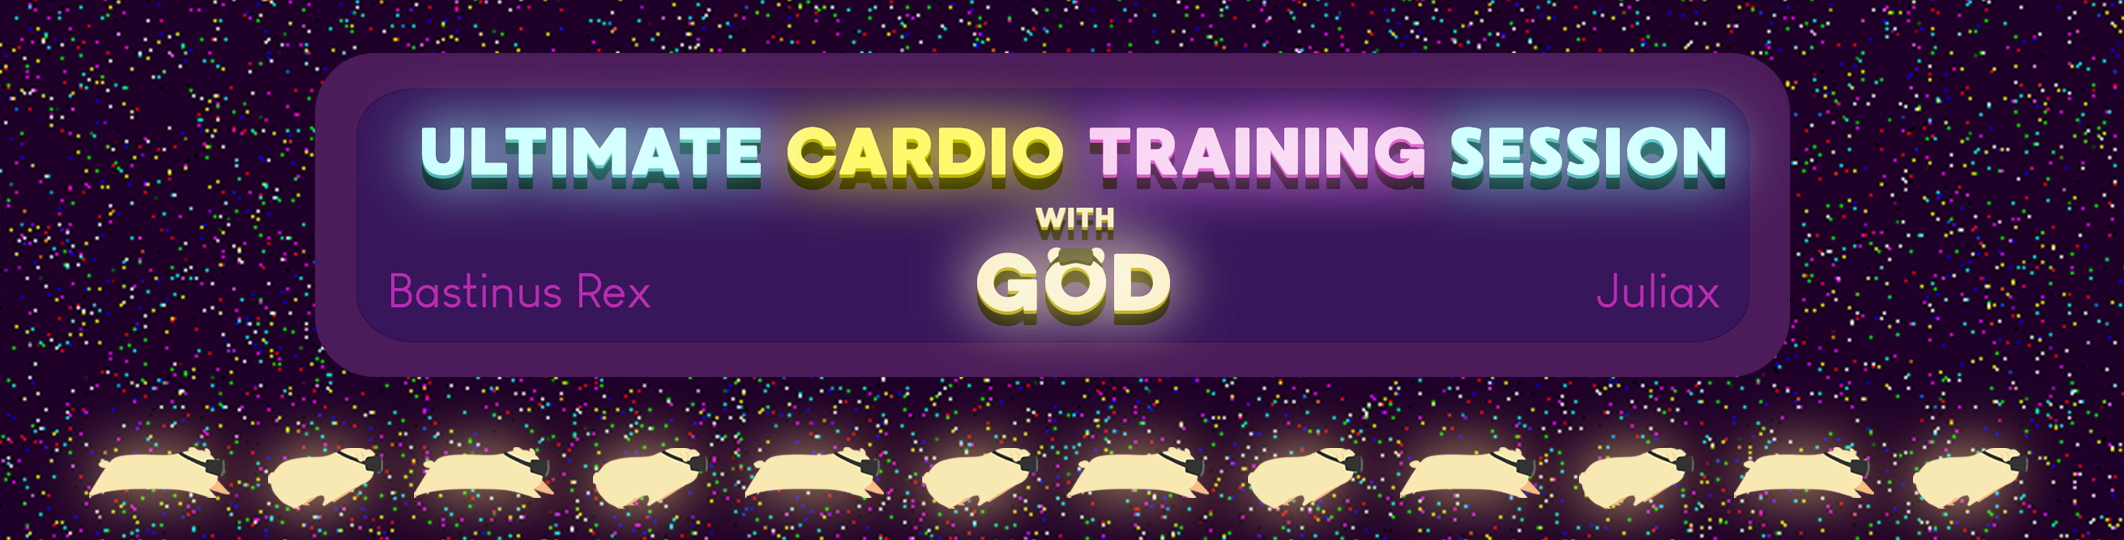 ULTIMATE CARDIO TRAINING SESSION with GOD